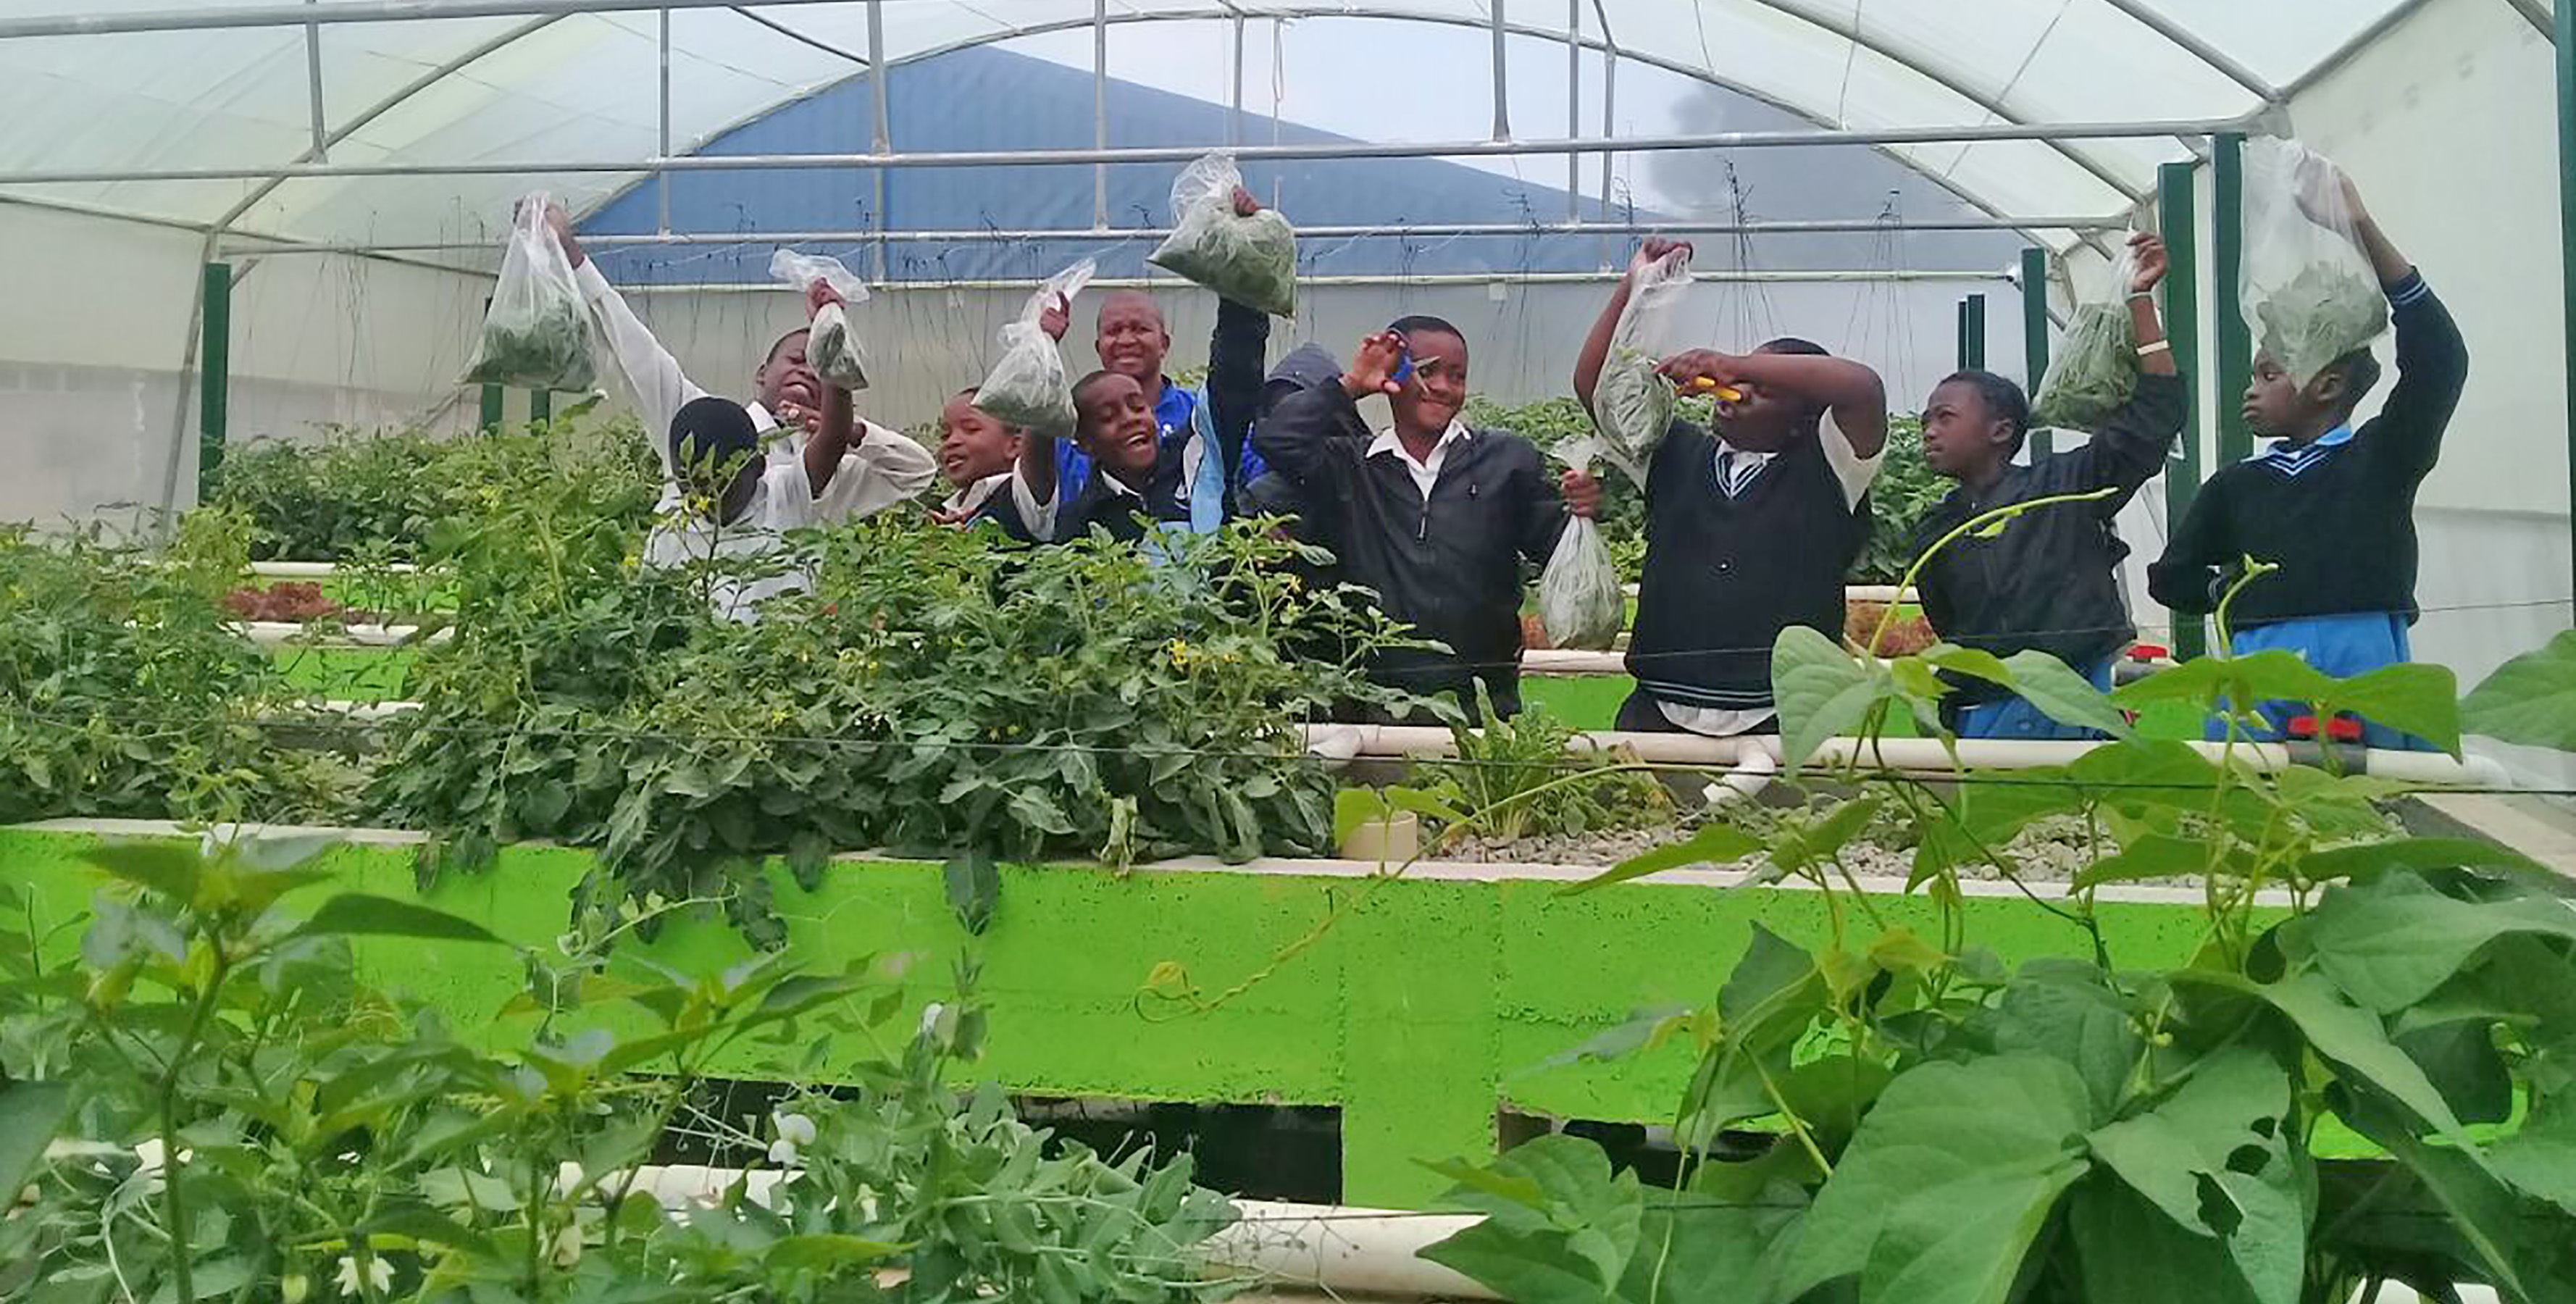 South Africa School Sets Stage for Aquaponics Training Curricula